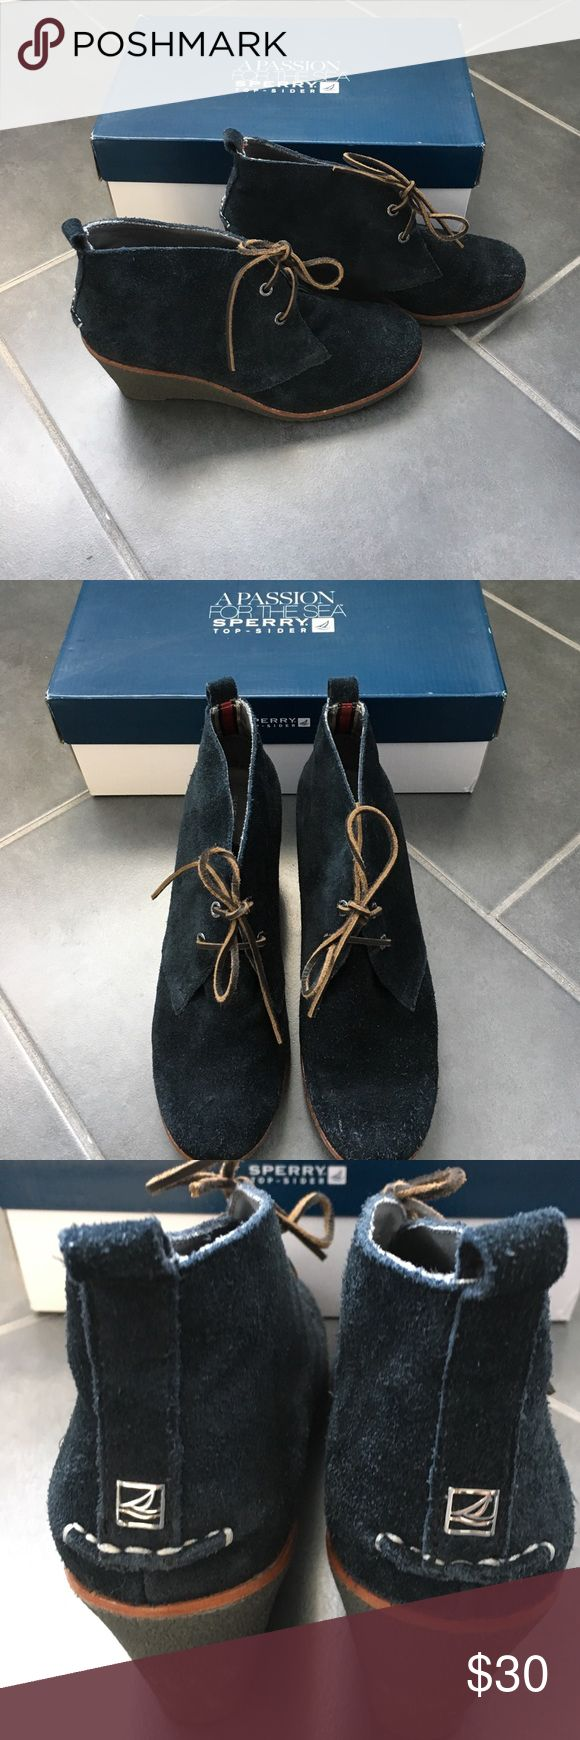 Sperry Harlow black suede wedge bootie Black suede lace up wedge bootie with rubber sole. Sperry Shoes Lace Up Boots